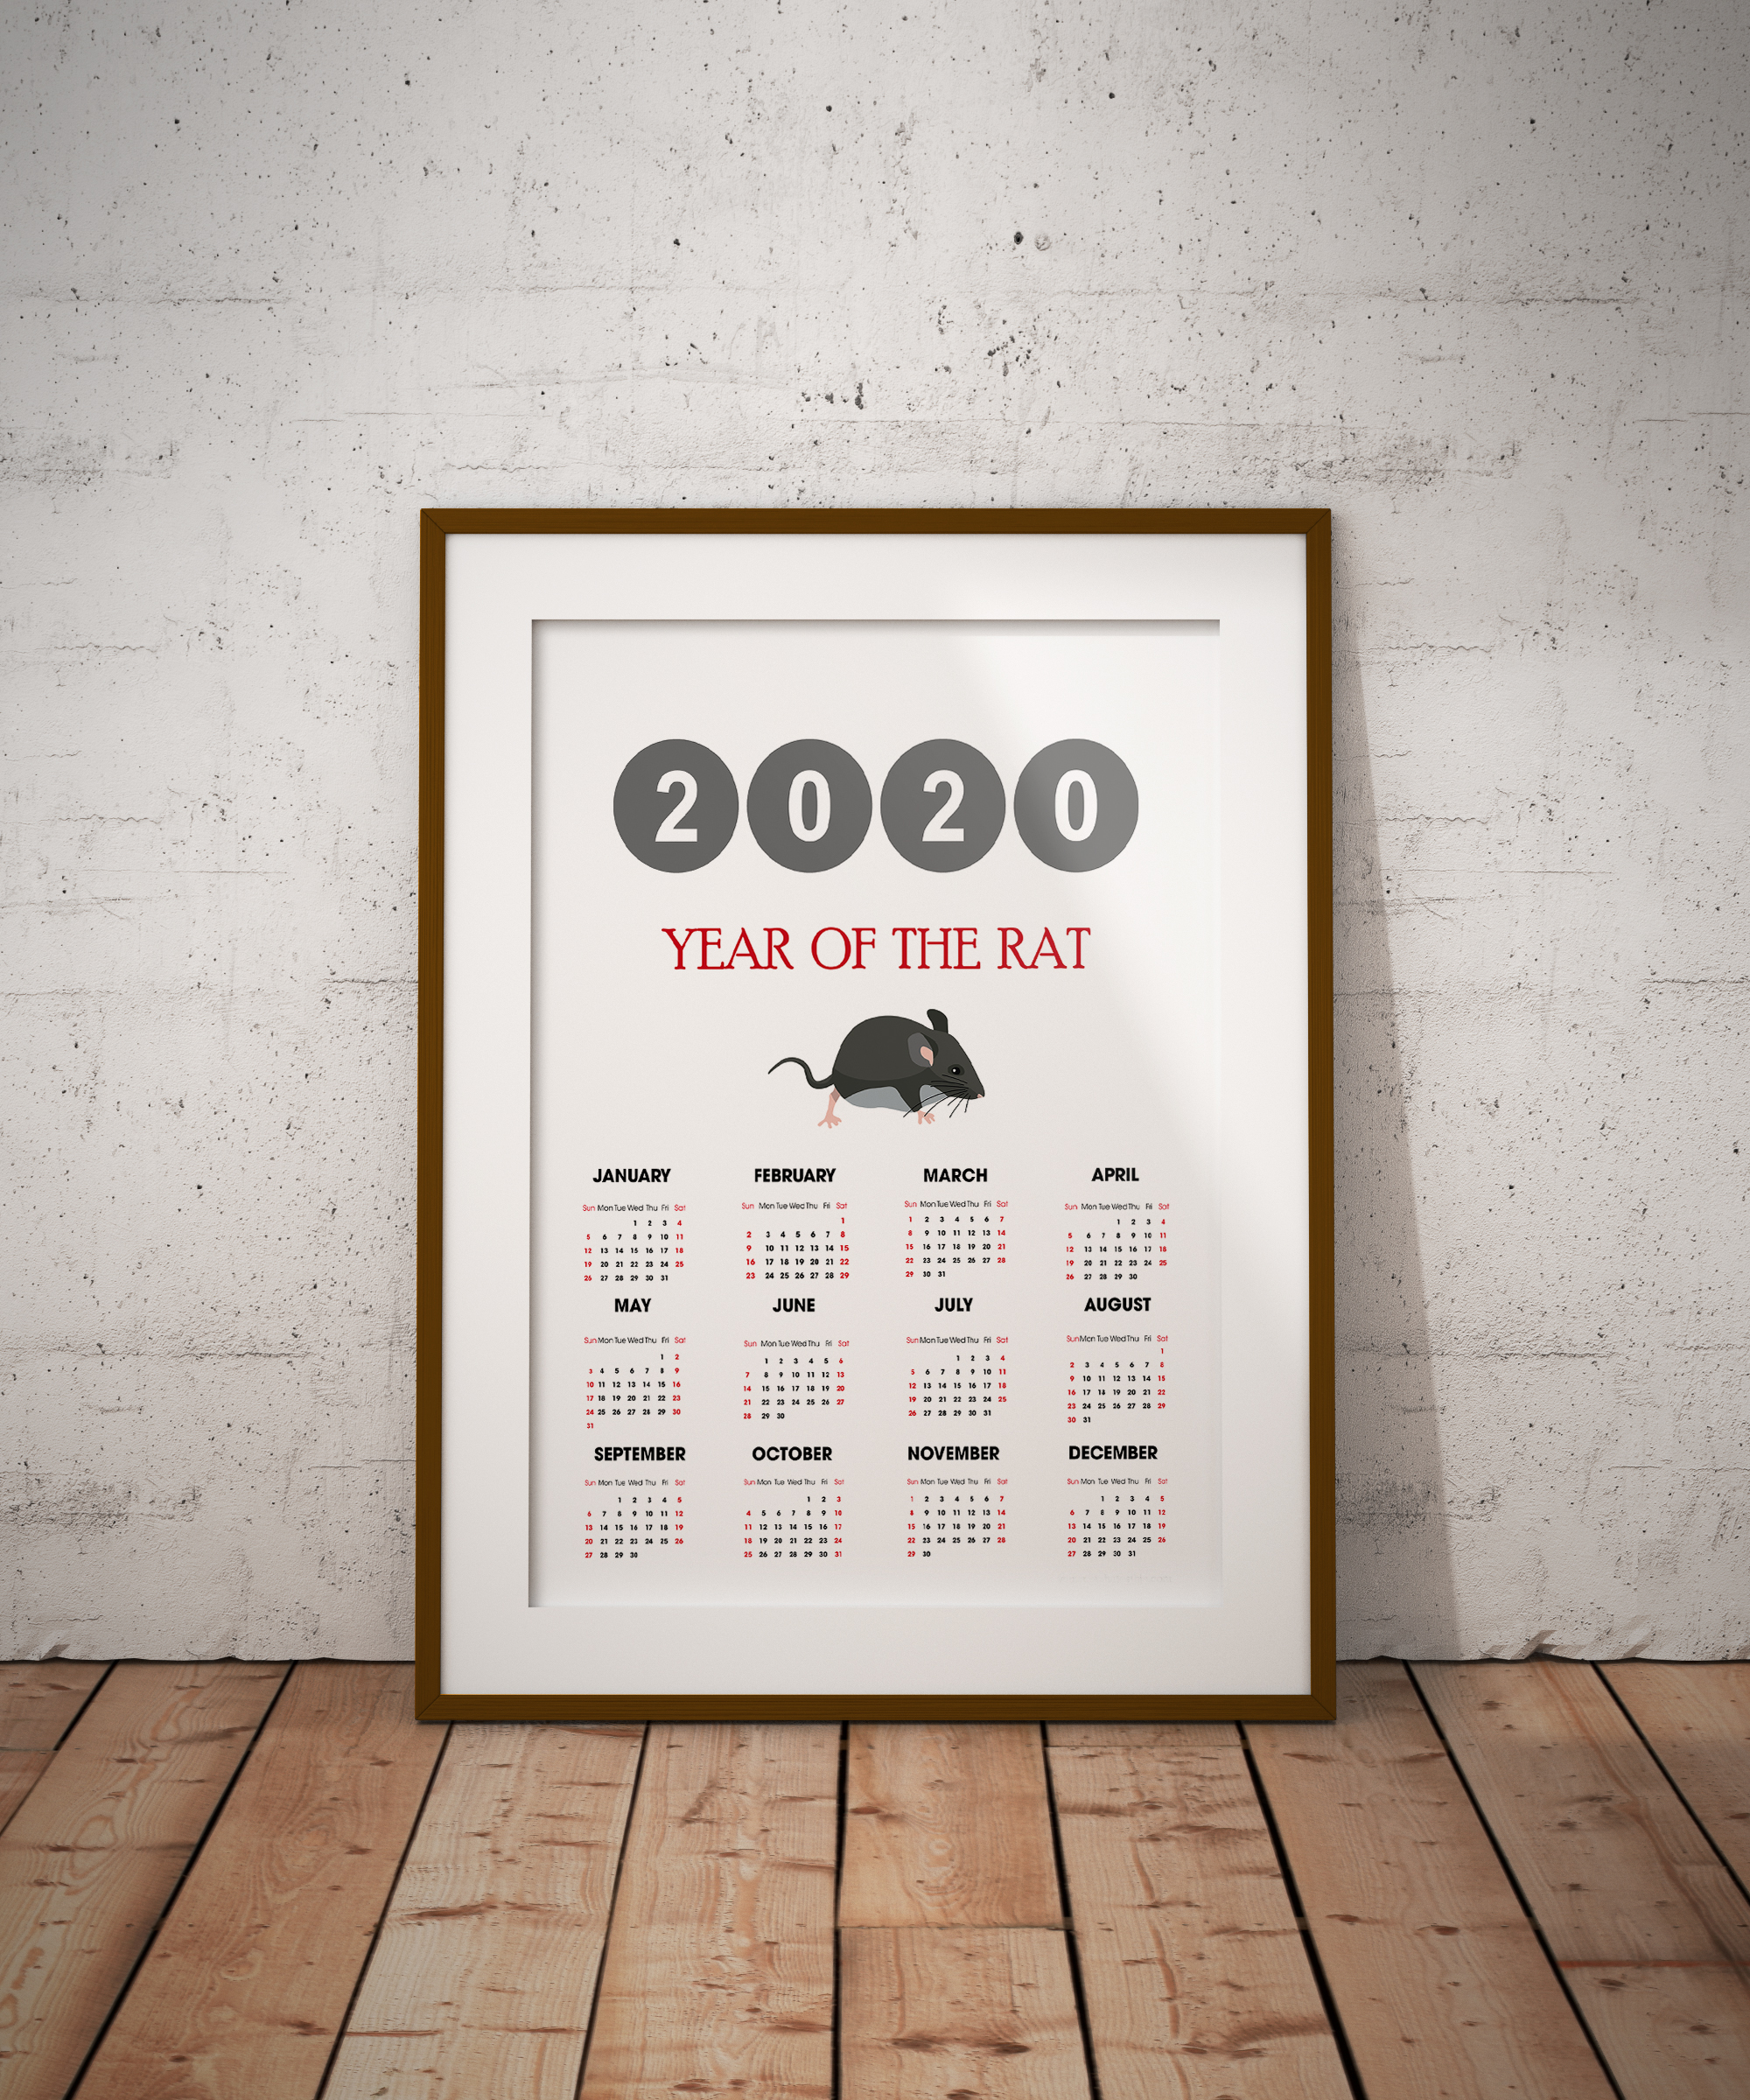 2020 Rat Yearly Calendar example image 3